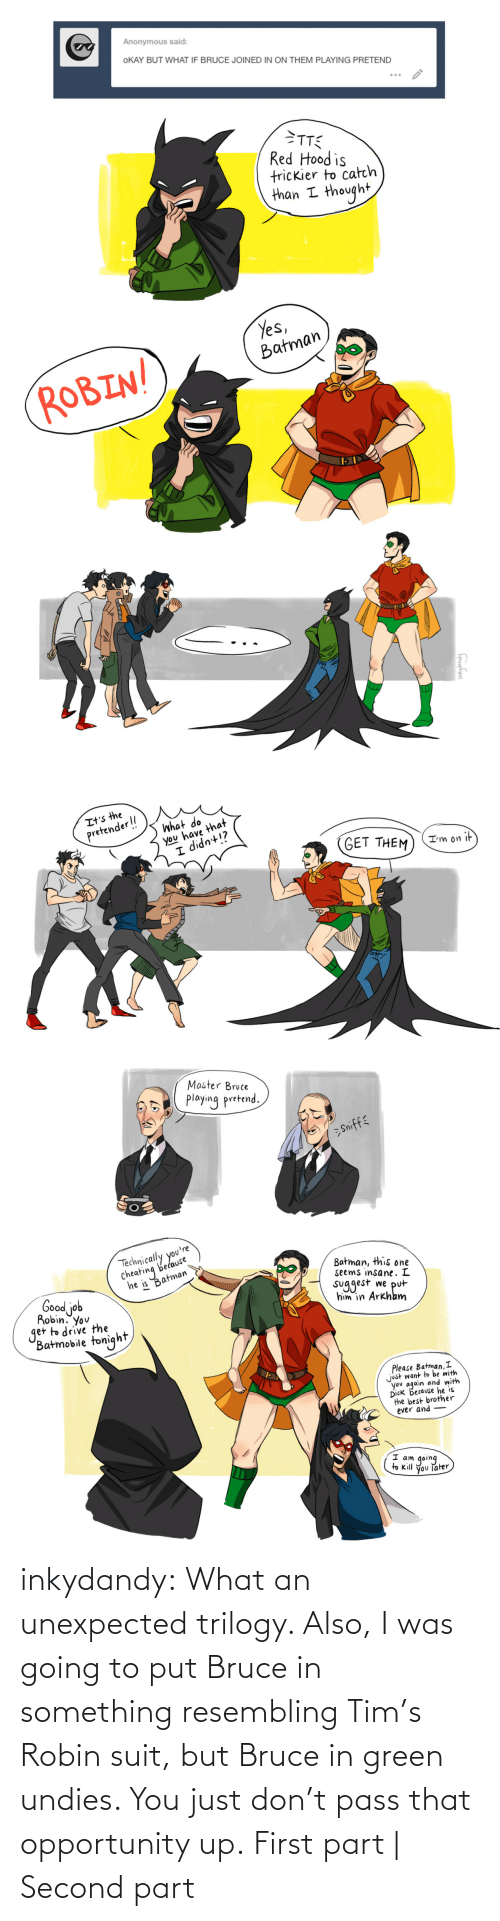 through: inkydandy: What an unexpected trilogy. Also, I was going to put Bruce in something resembling Tim's Robin suit, but Bruce in green undies. You just don't pass that opportunity up. First part | Second part